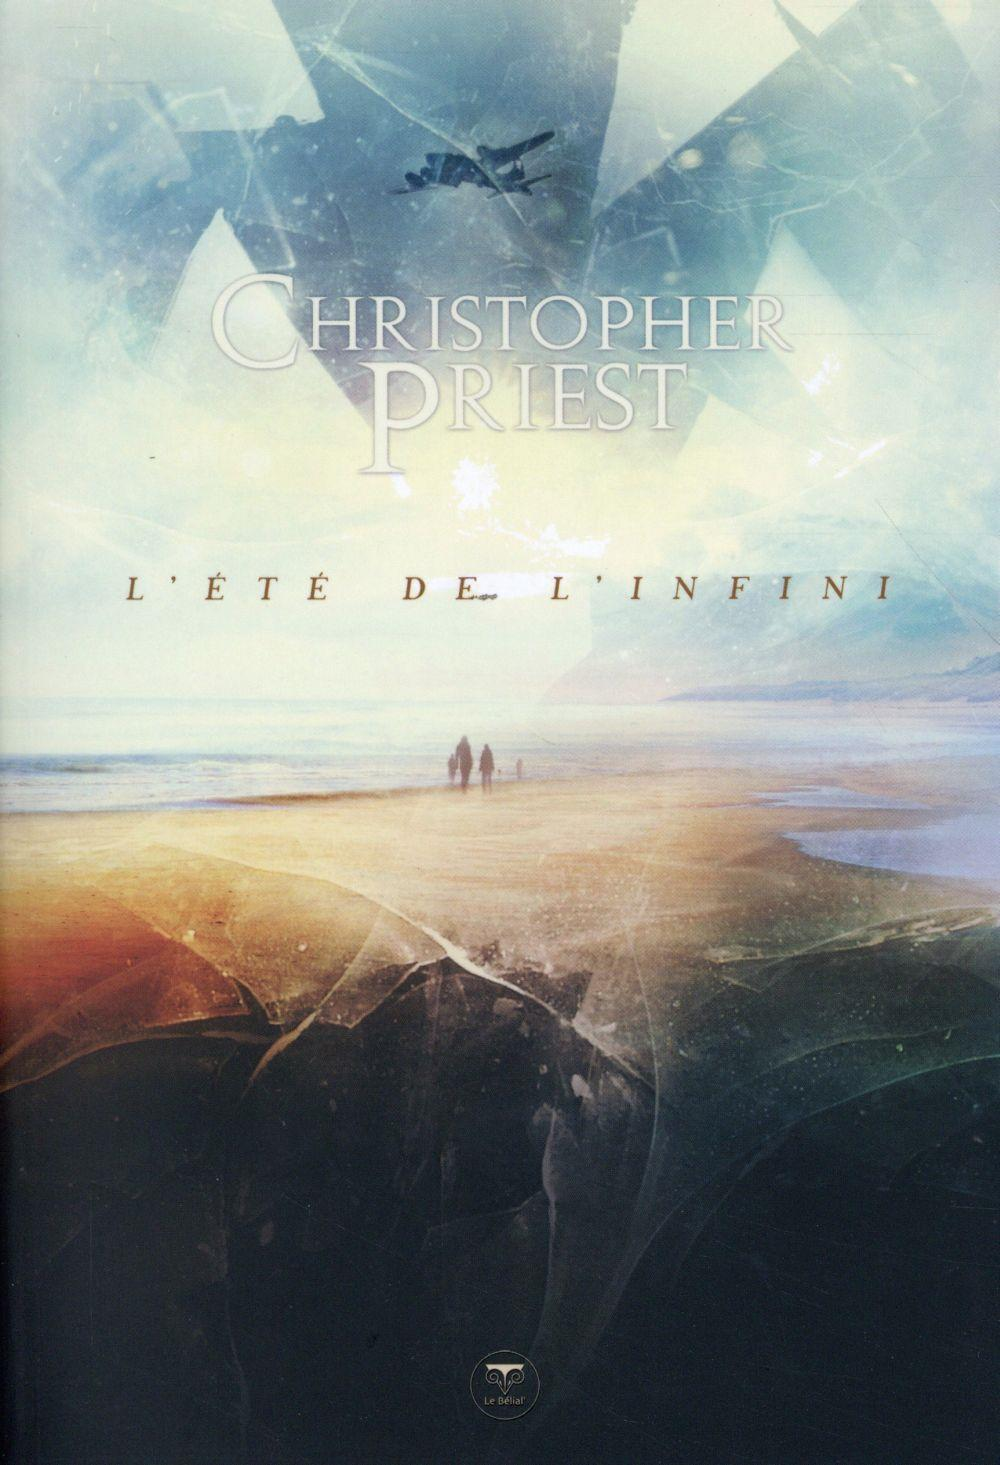 L'été de l'infini  - Christopher Priest